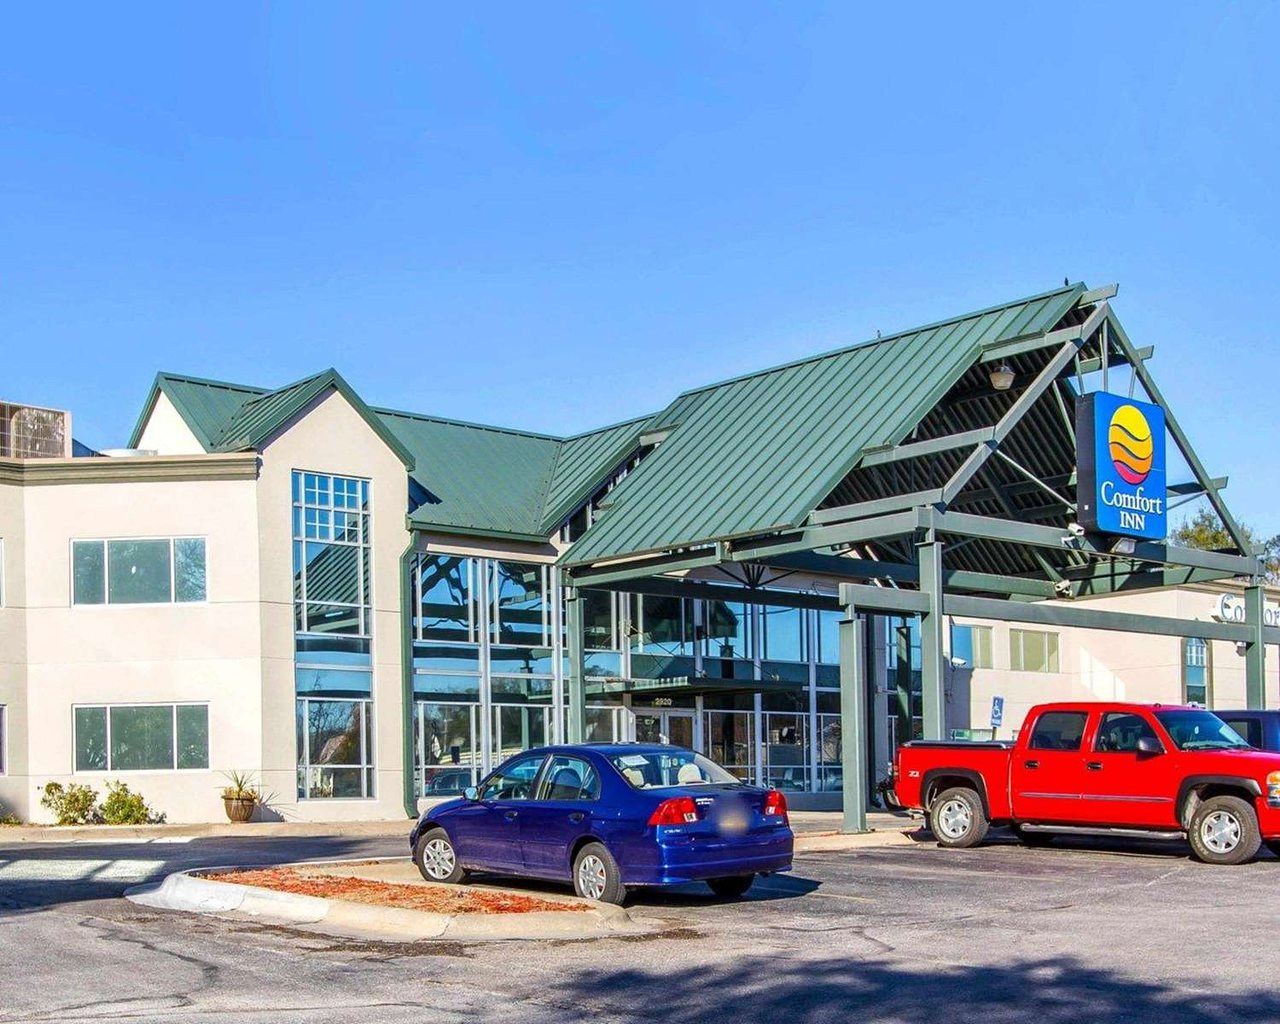 Comfort Inn At The Zoo 89 1 1 3 Updated 2019 Prices Hotel